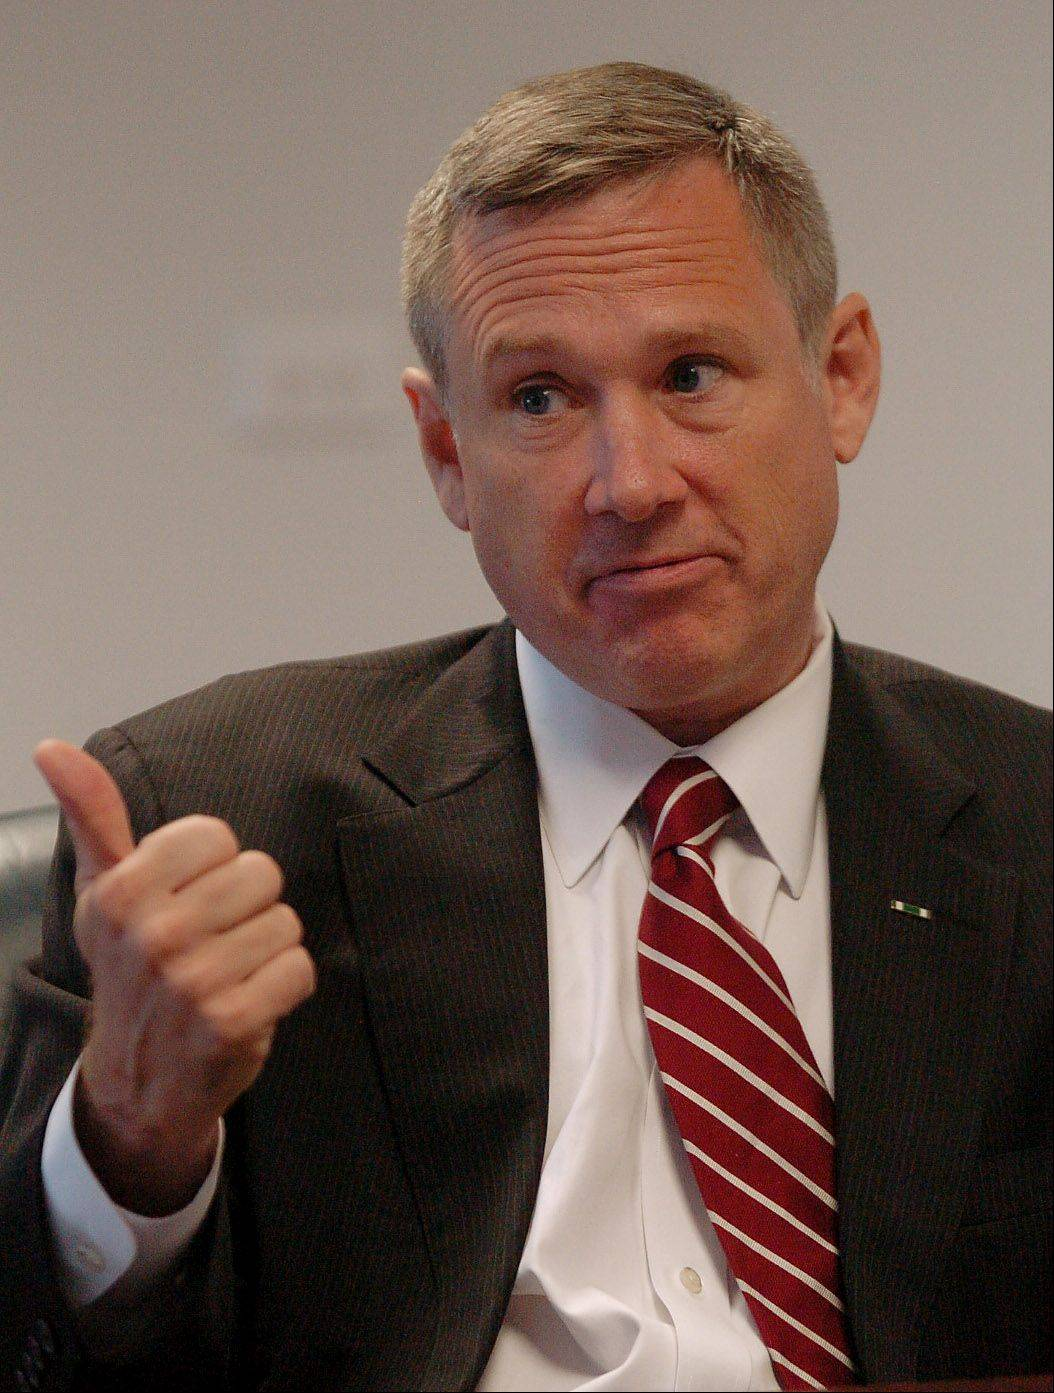 Bob Chwedyk/bchwedyk@dailyherald.comSen. Mark Kirk is calling for Congress to return to Washington D.C. to address the nation's debt issue. He met Wednesday with the Daily Herald editorial board.